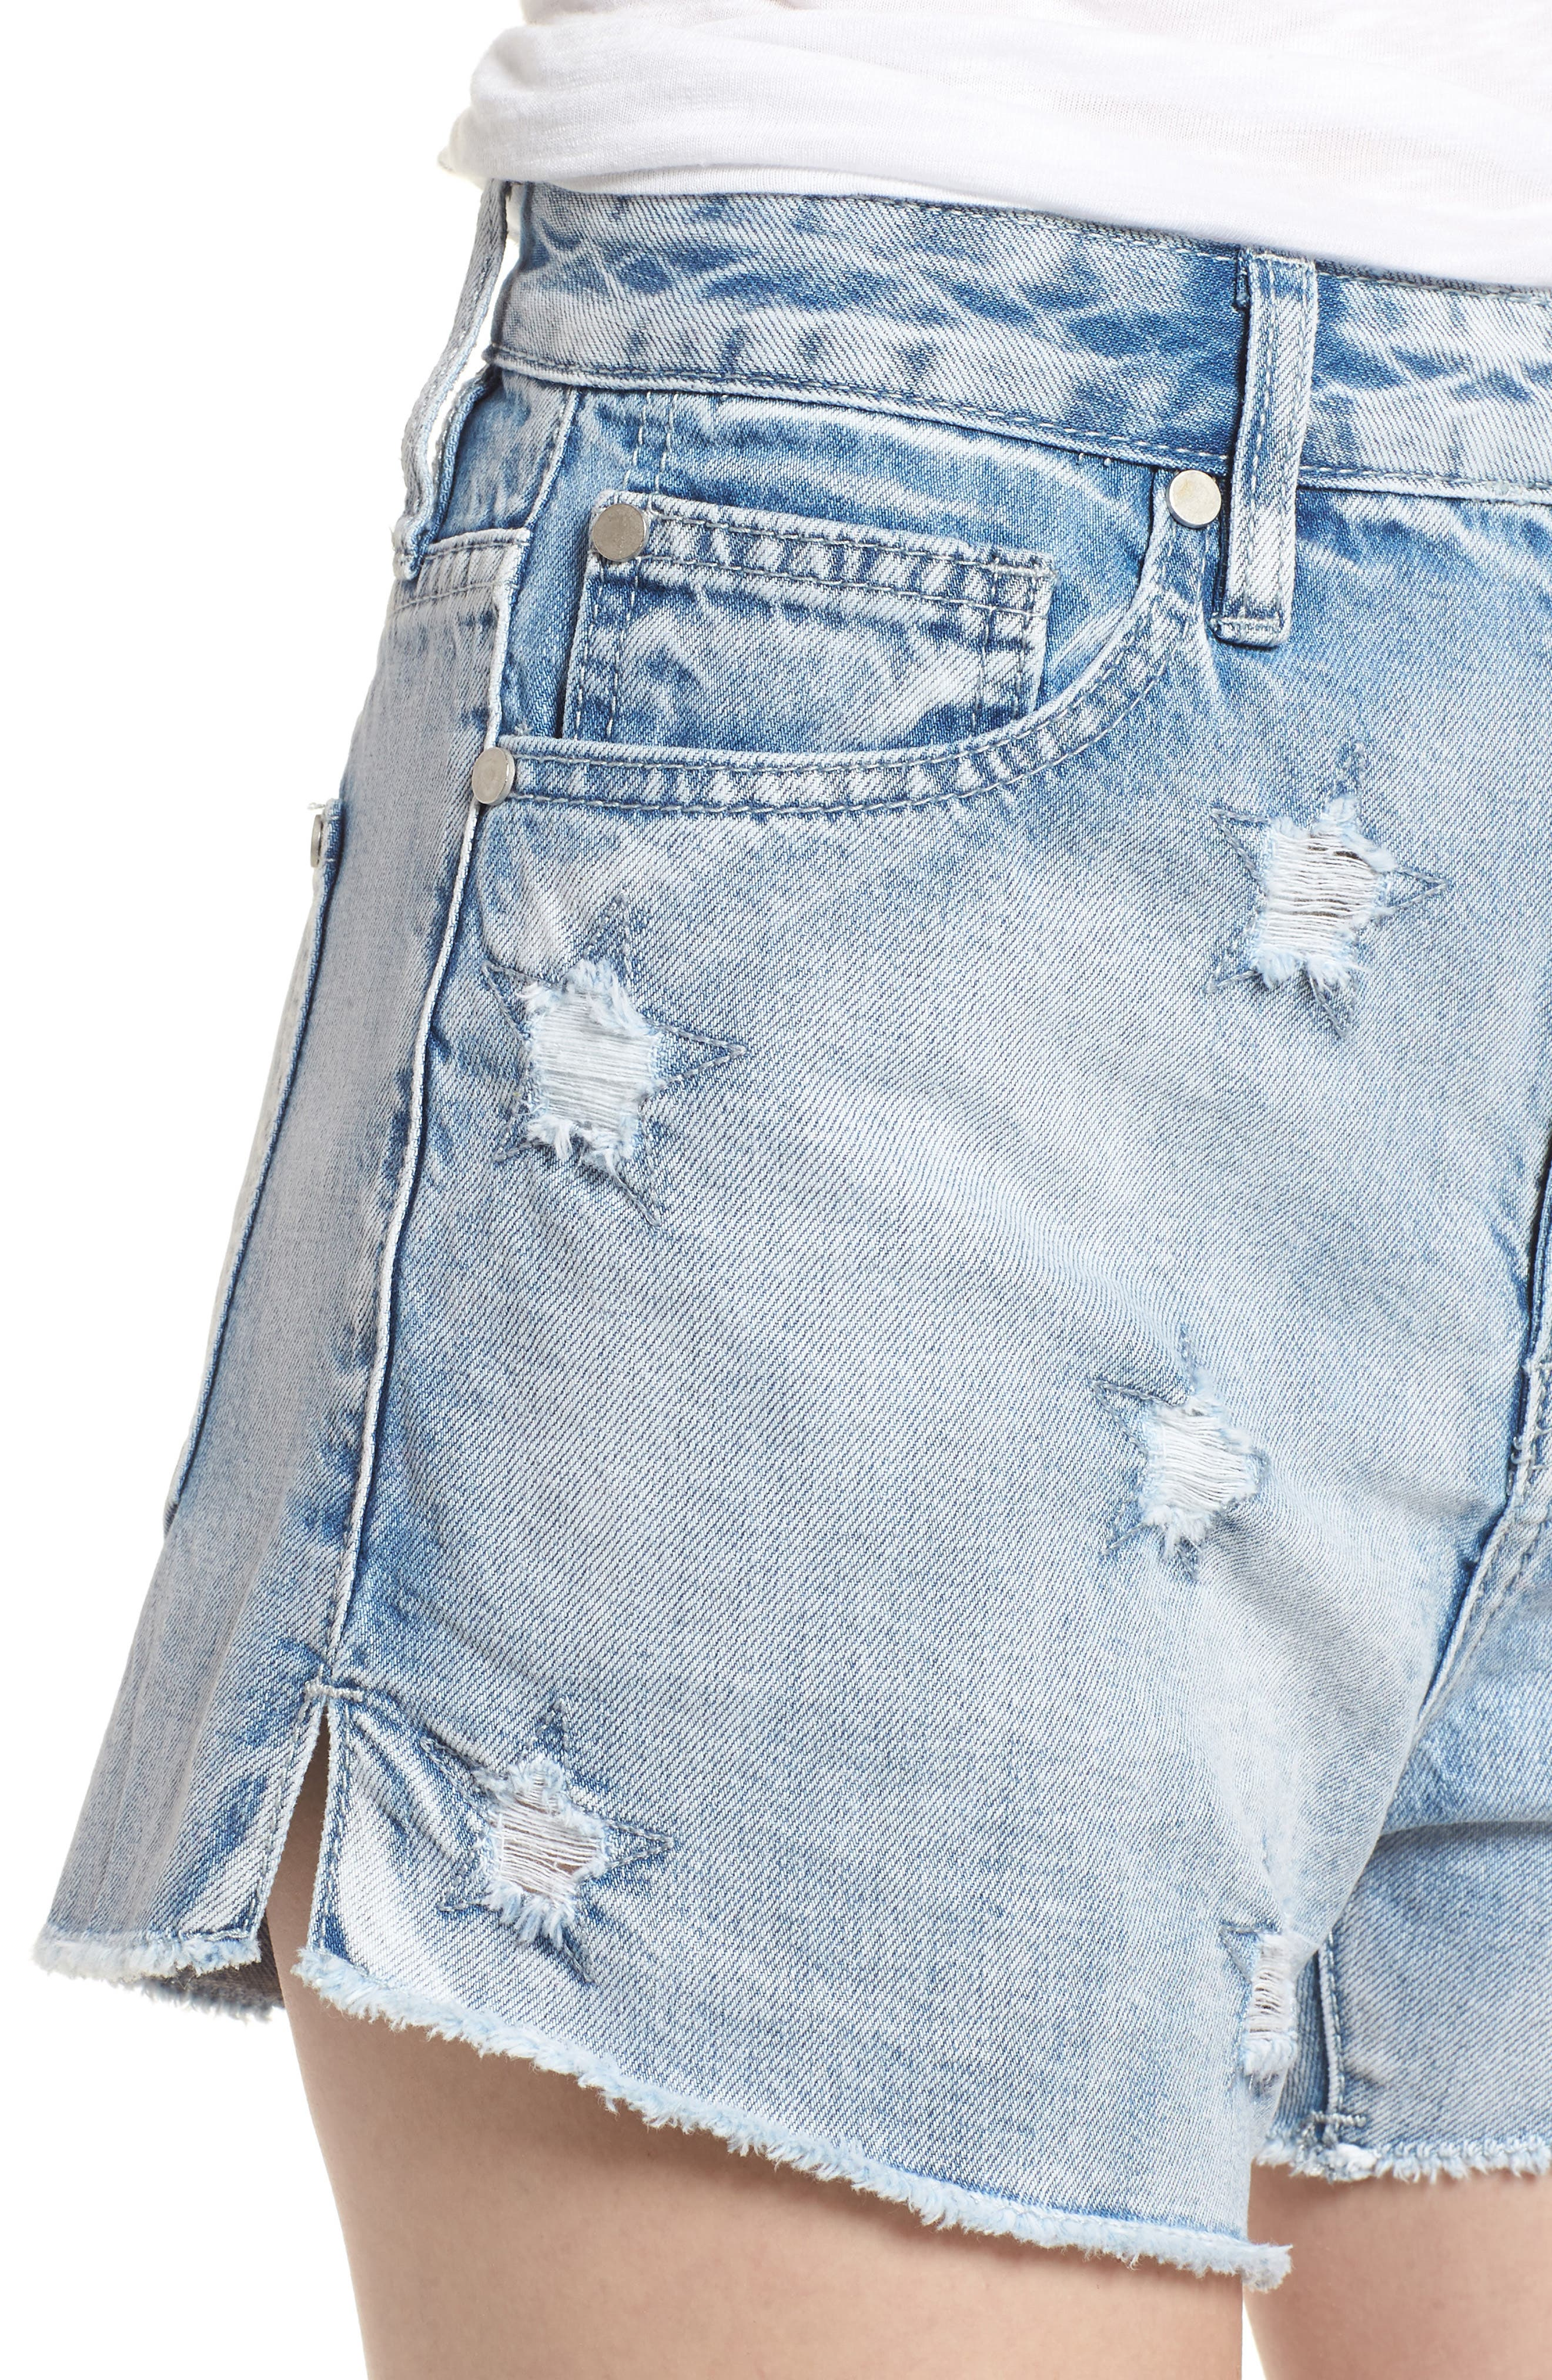 Acid Wash Star Denim Shorts,                             Alternate thumbnail 4, color,                             400